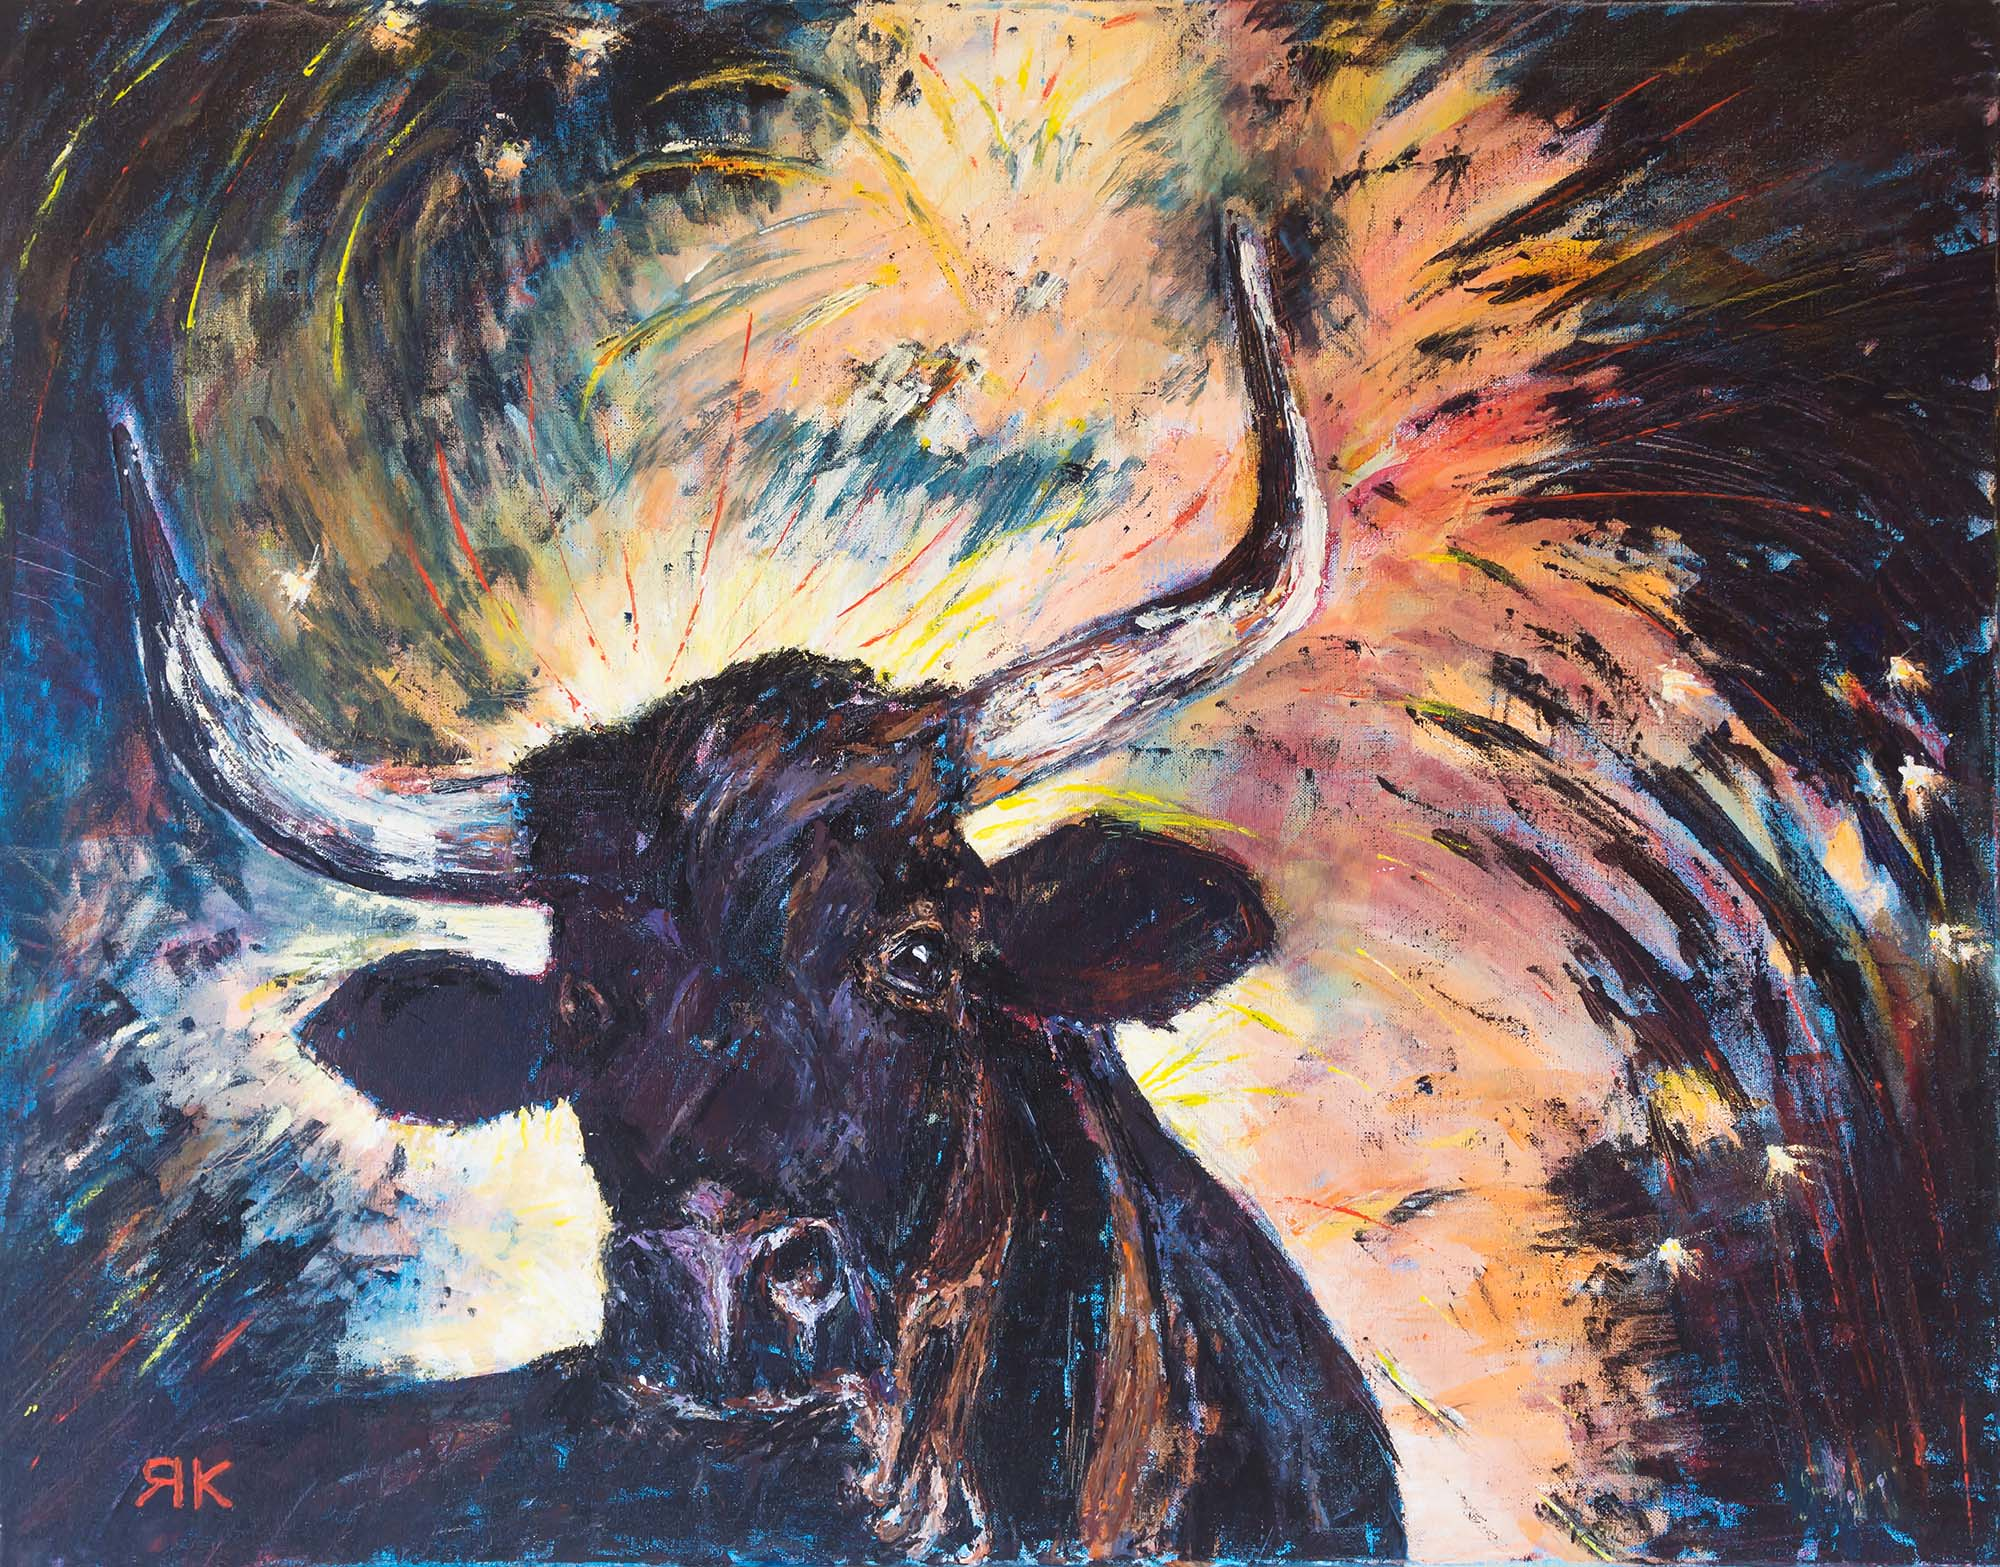 Spanish black bull on colorful background by Ria Kieboom